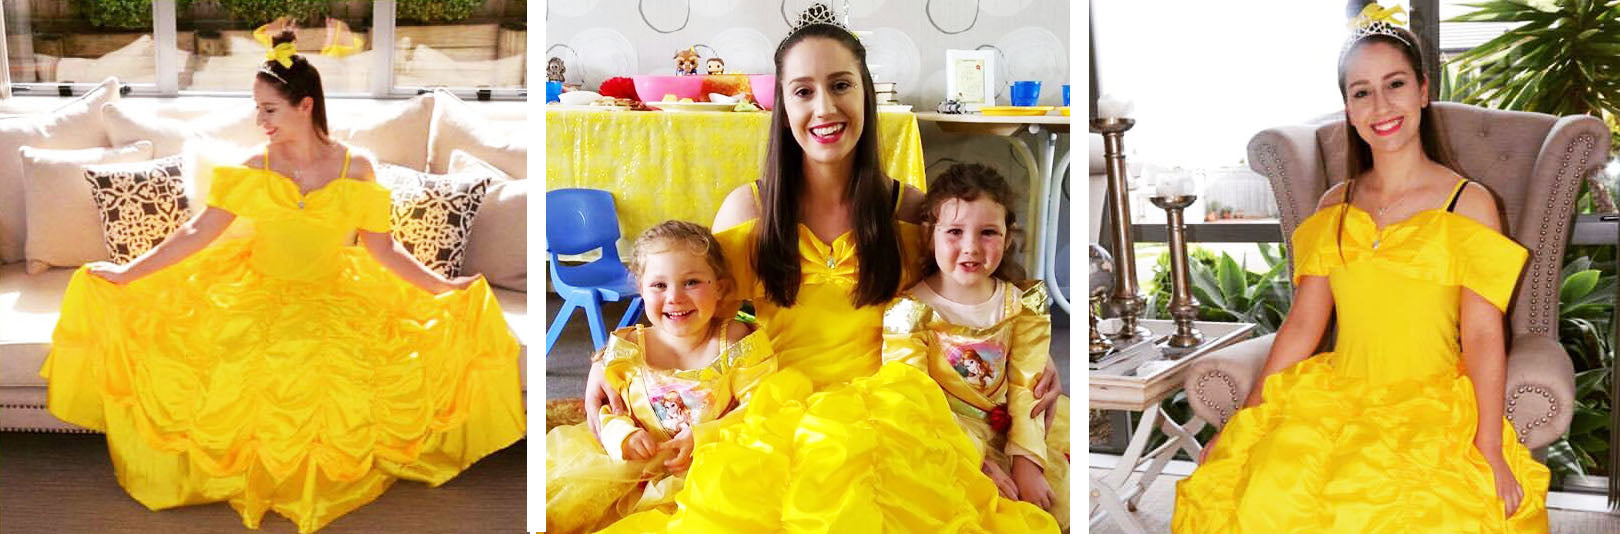 Princess Belle birthday parties Auckland